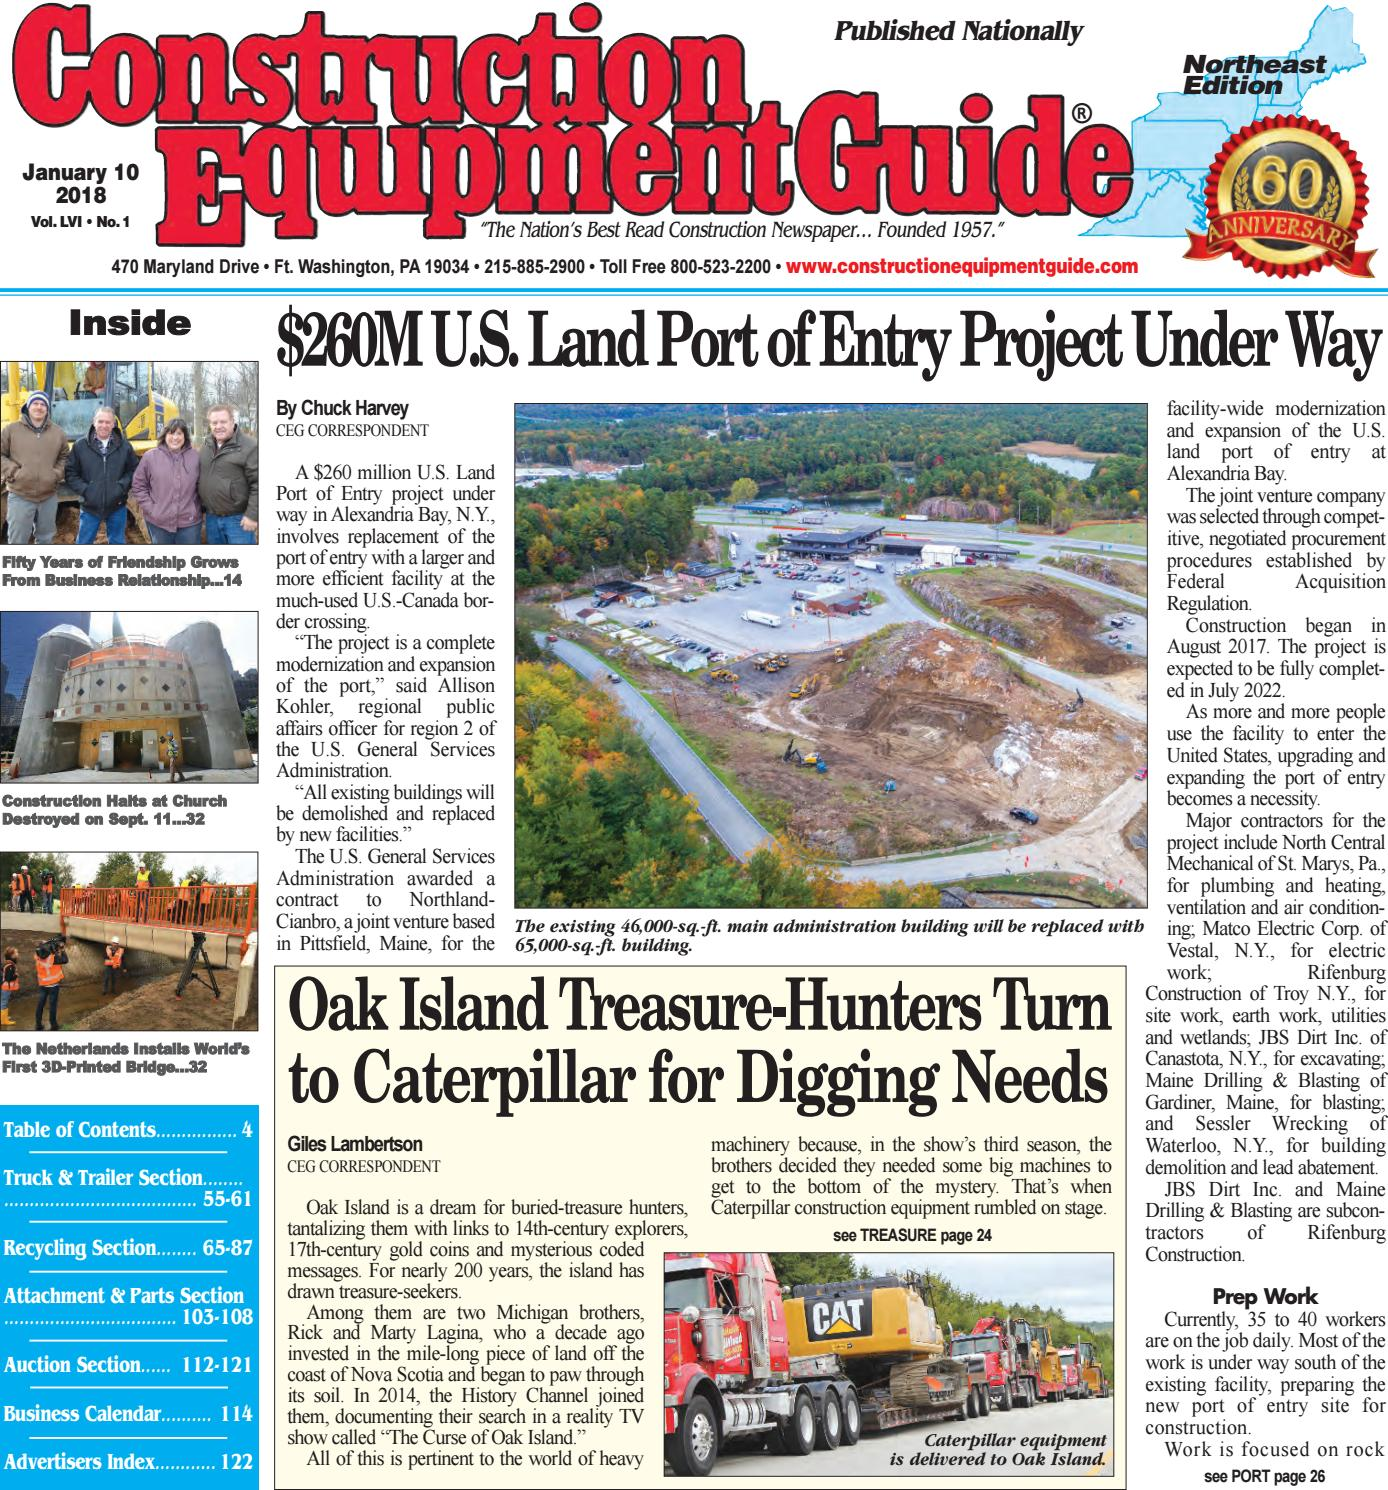 Northeast 1 January 10 2018 by Construction Equipment Guide issuu